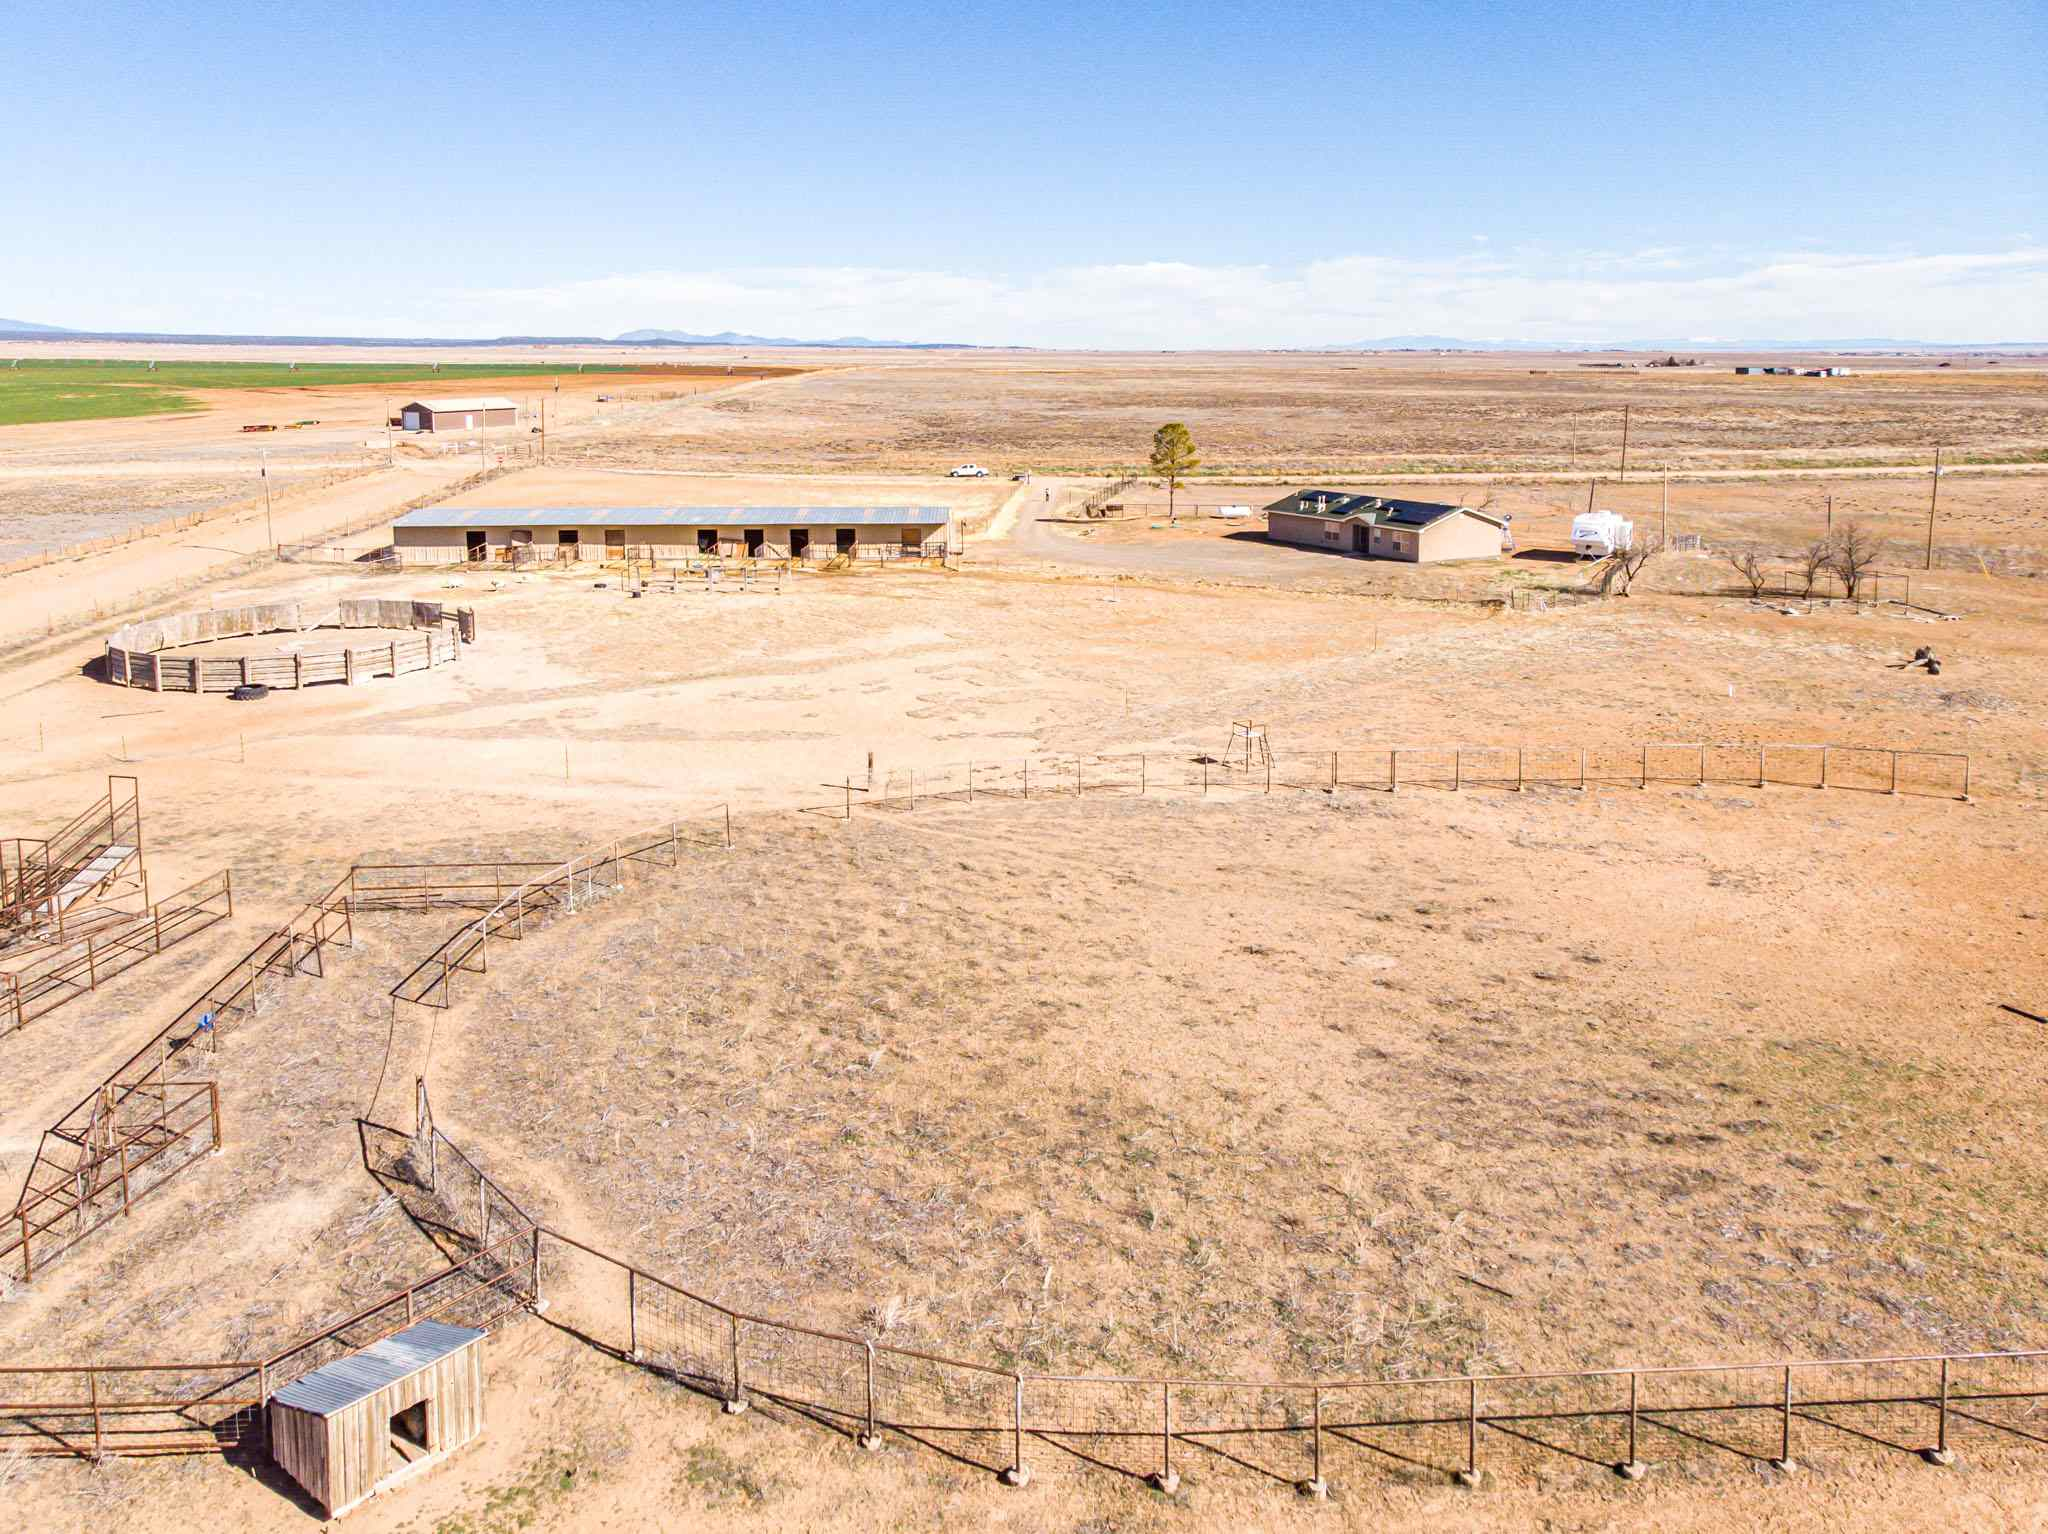 This New Mexico 40-acre equine property with a 1620 sf home features an 11-stall barn with hay storage, holding pens and riding arena. The 40 acres is fully fenced and cross-fenced and has good grass for horses to graze. Property is located just west of Estancia in Torrance County. The home consist of 3 bedrooms, two bathrooms, lovely master suite and a nice country kitchen. The Manzano Mountain views are magnificent especially at sunset. Solar panelson the roof make the home energy efficient with low electric bills. Albuquerque is about 60 minutes away and Santa Fe is roughly 90 minutes.